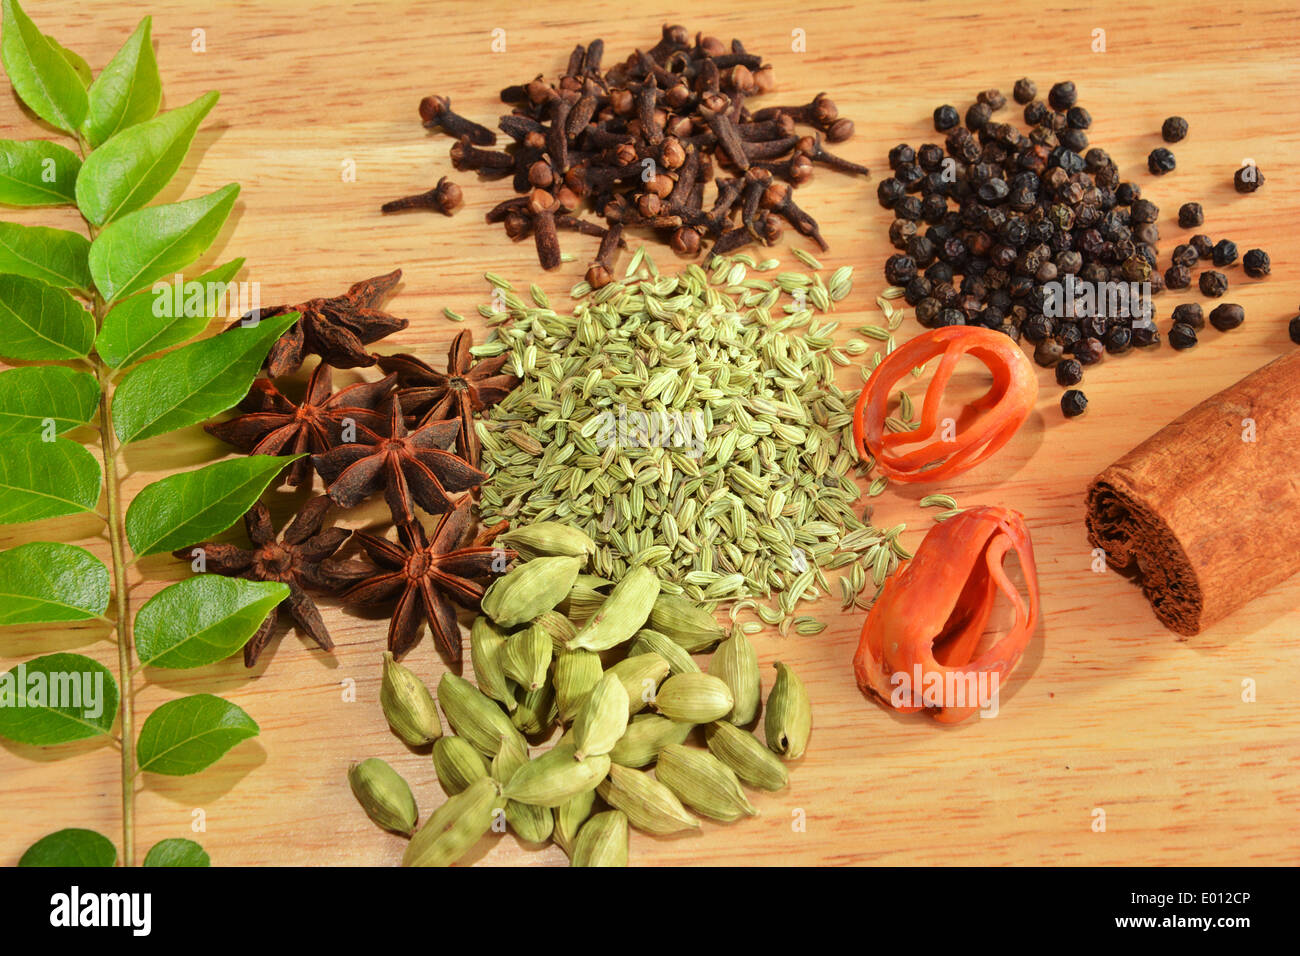 assortment of spices from Kerala - Stock Image